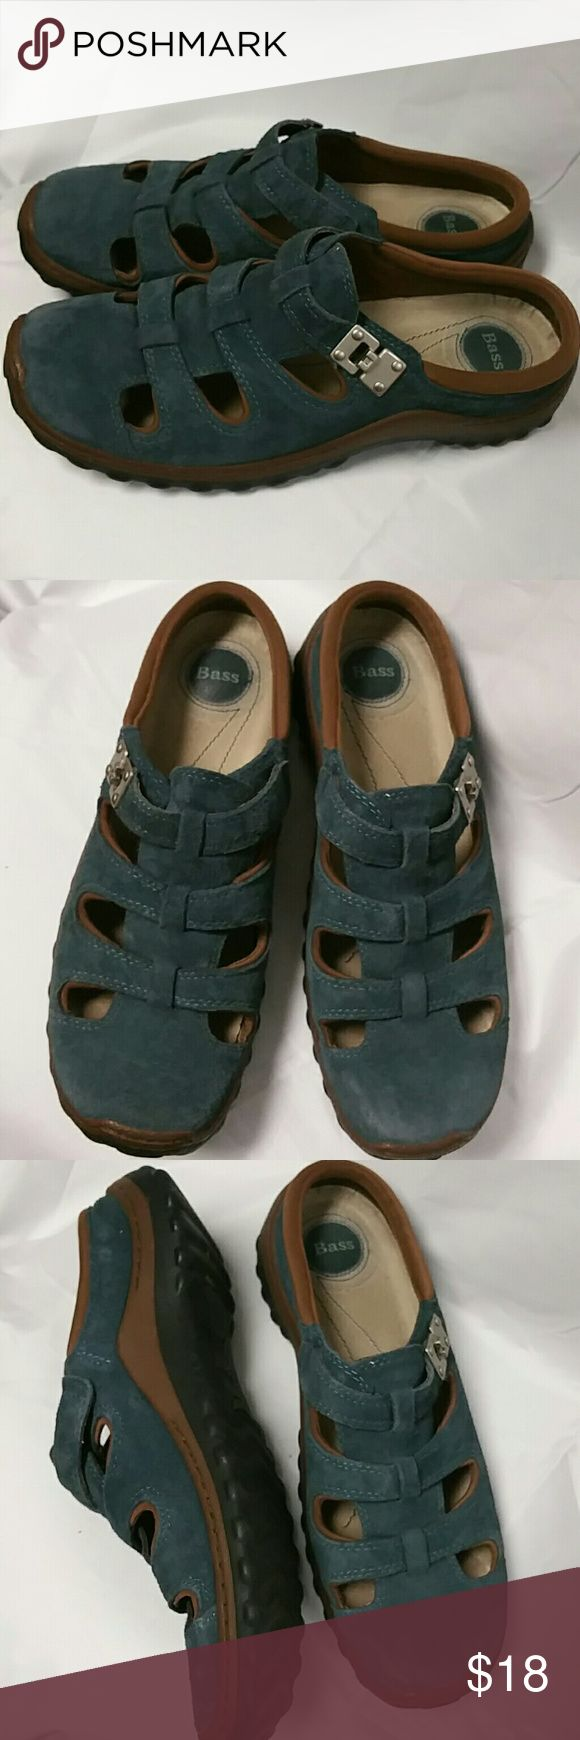 Bass blue suede adjustable slip ons. Size 7.5 Genuine suede and leather uppers  Slip on foot. Heavy rugged rubber sole. Size 7.5. These are used but very good condition. No real flaws to picture. Bass Shoes Flats & Loafers